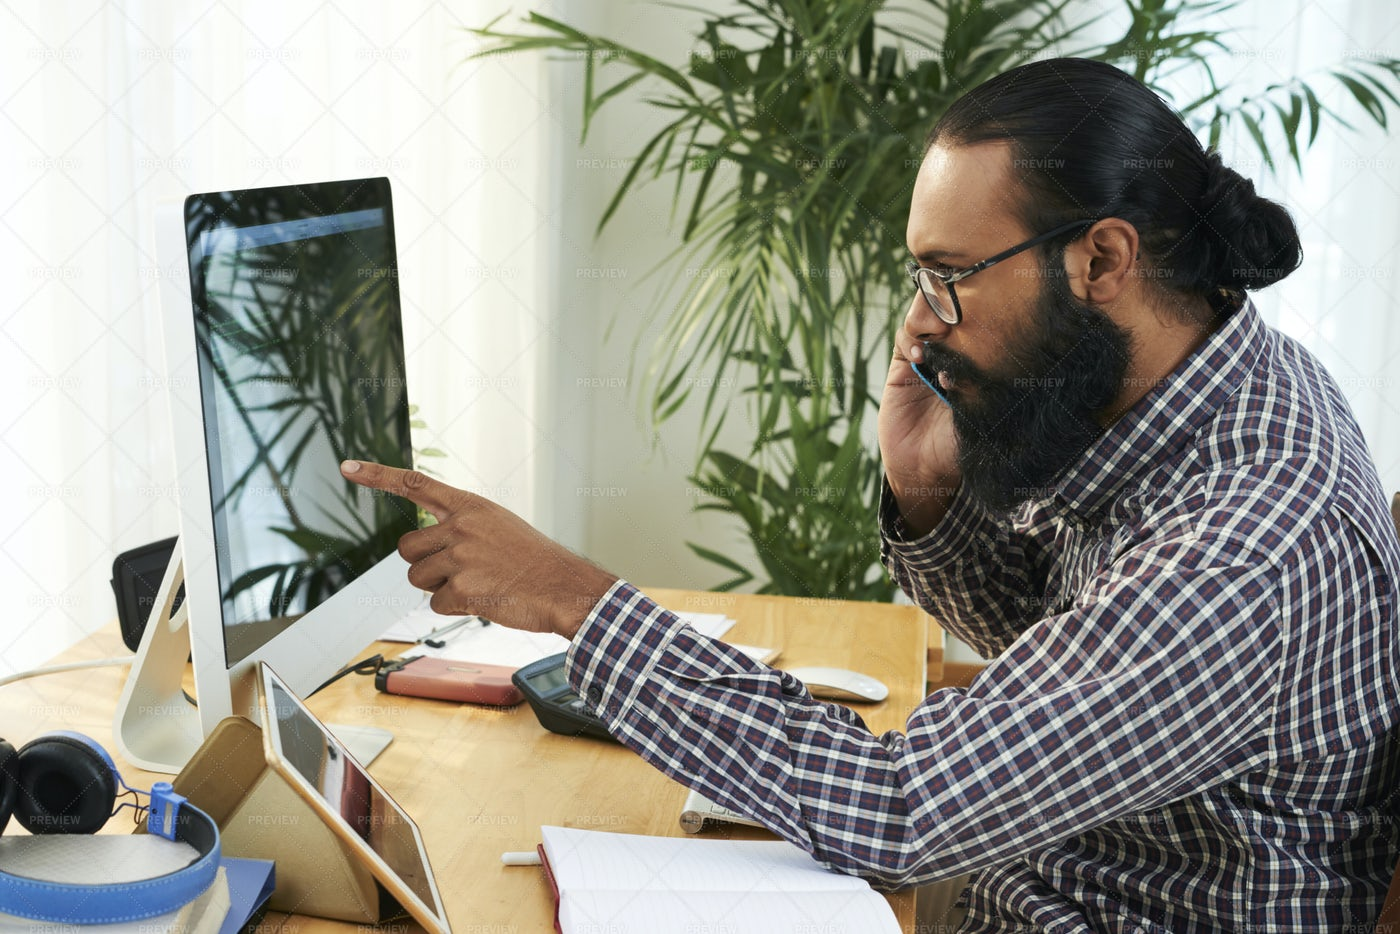 Programmer Working On Computer And: Stock Photos